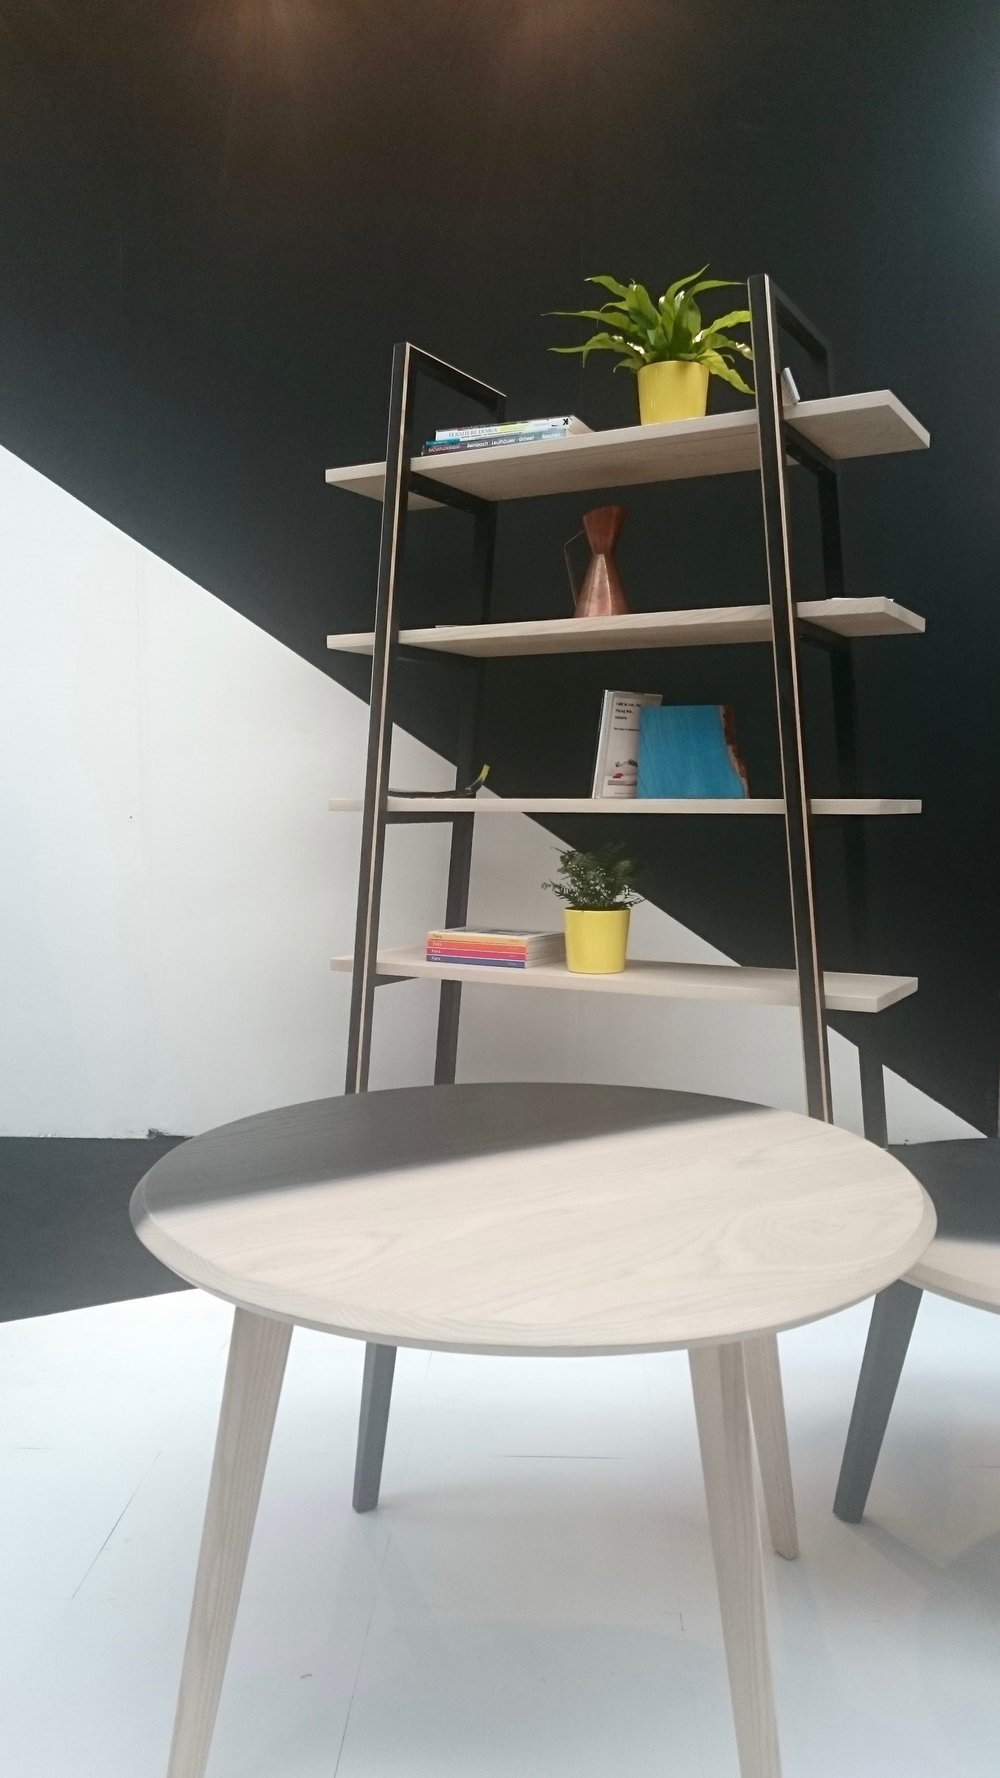 Alexander Mueller Wood Table and Bookcase at London Design Festival 2016 - Smartstyle Interiors.jpg